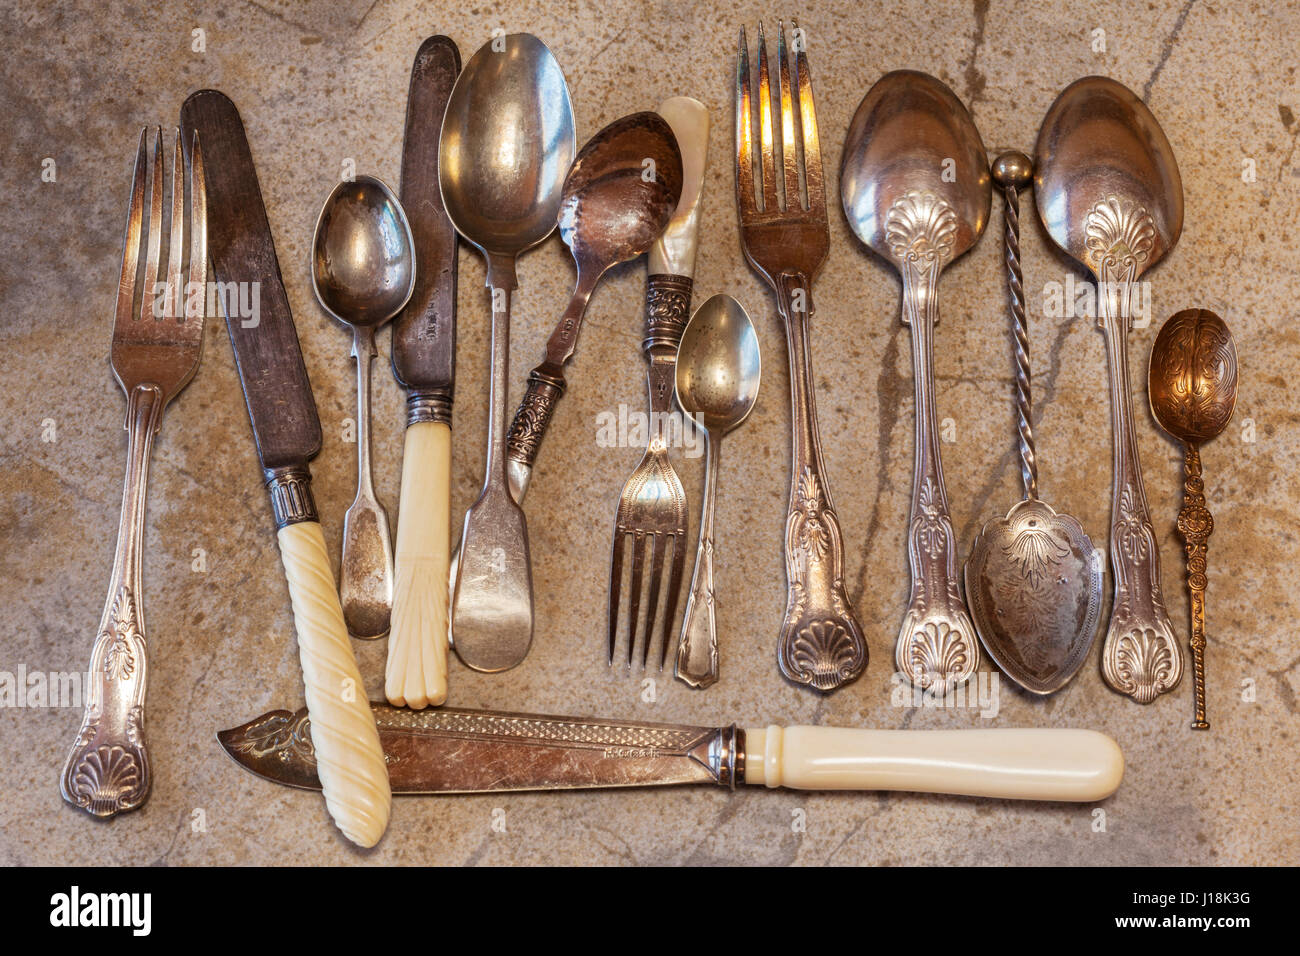 A collection of old cutlery - Stock Image